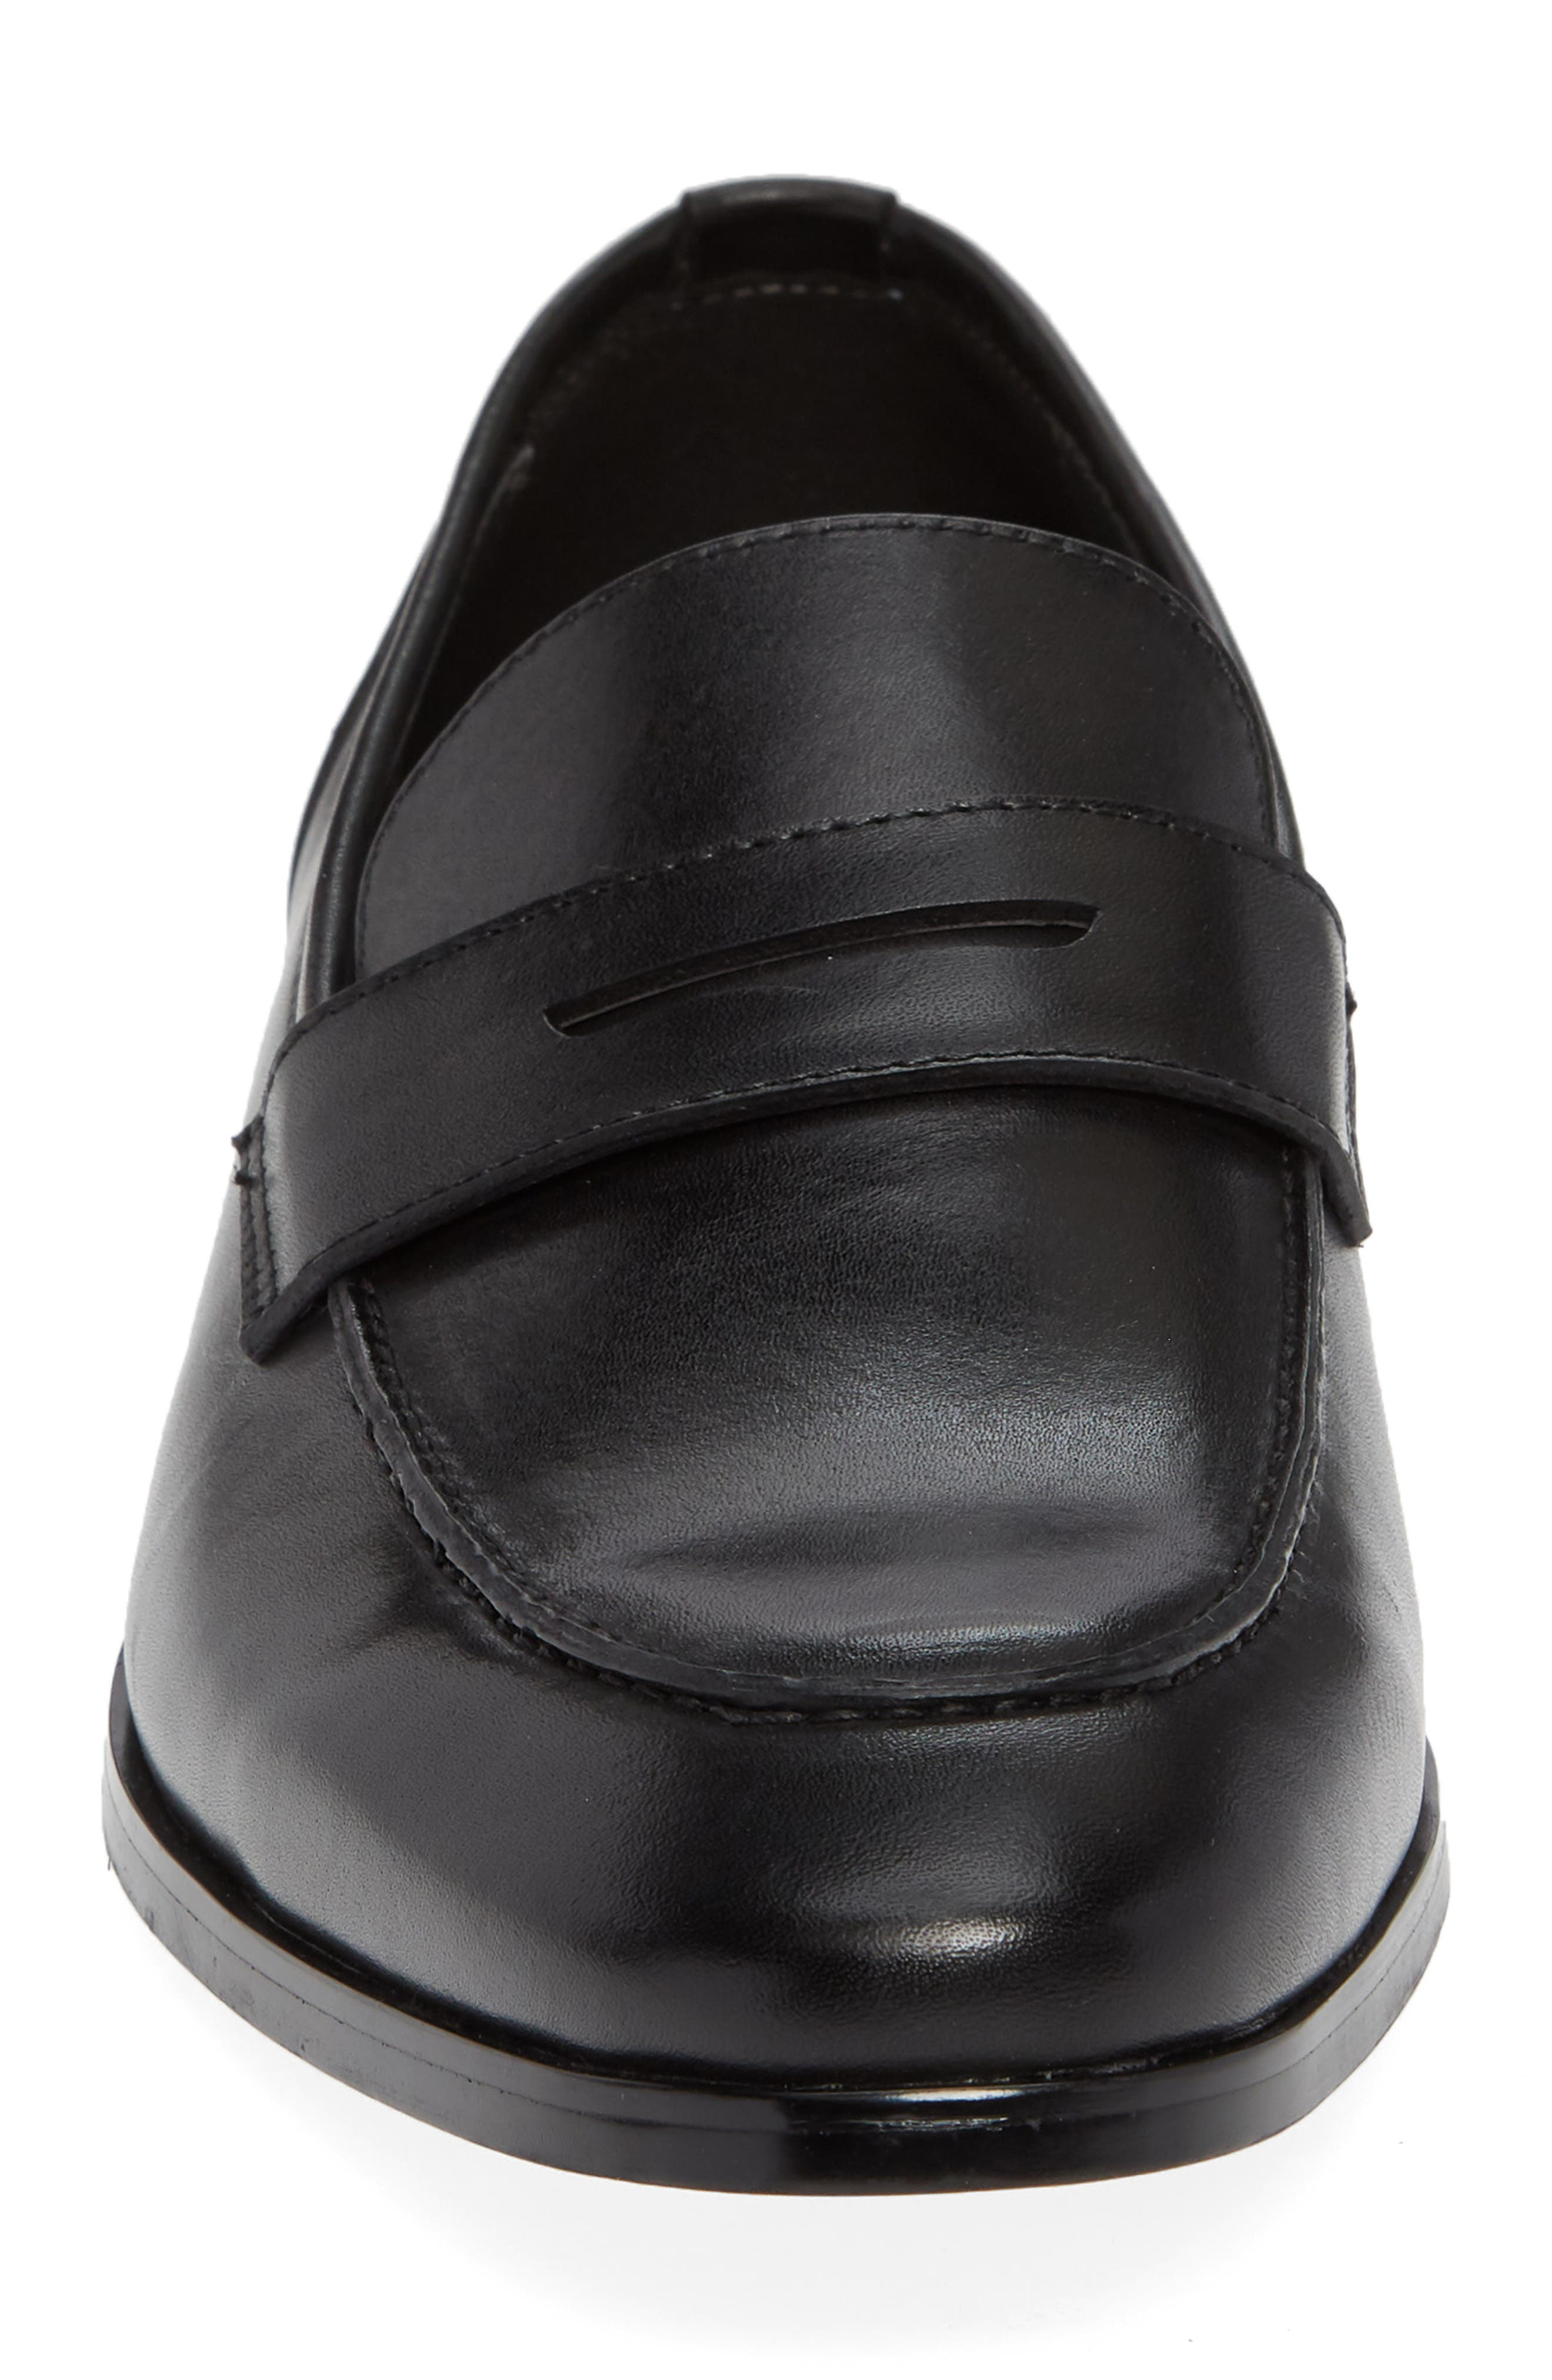 Denio Apron Toe Penny Loafer,                             Alternate thumbnail 4, color,                             BLACK LEATHER